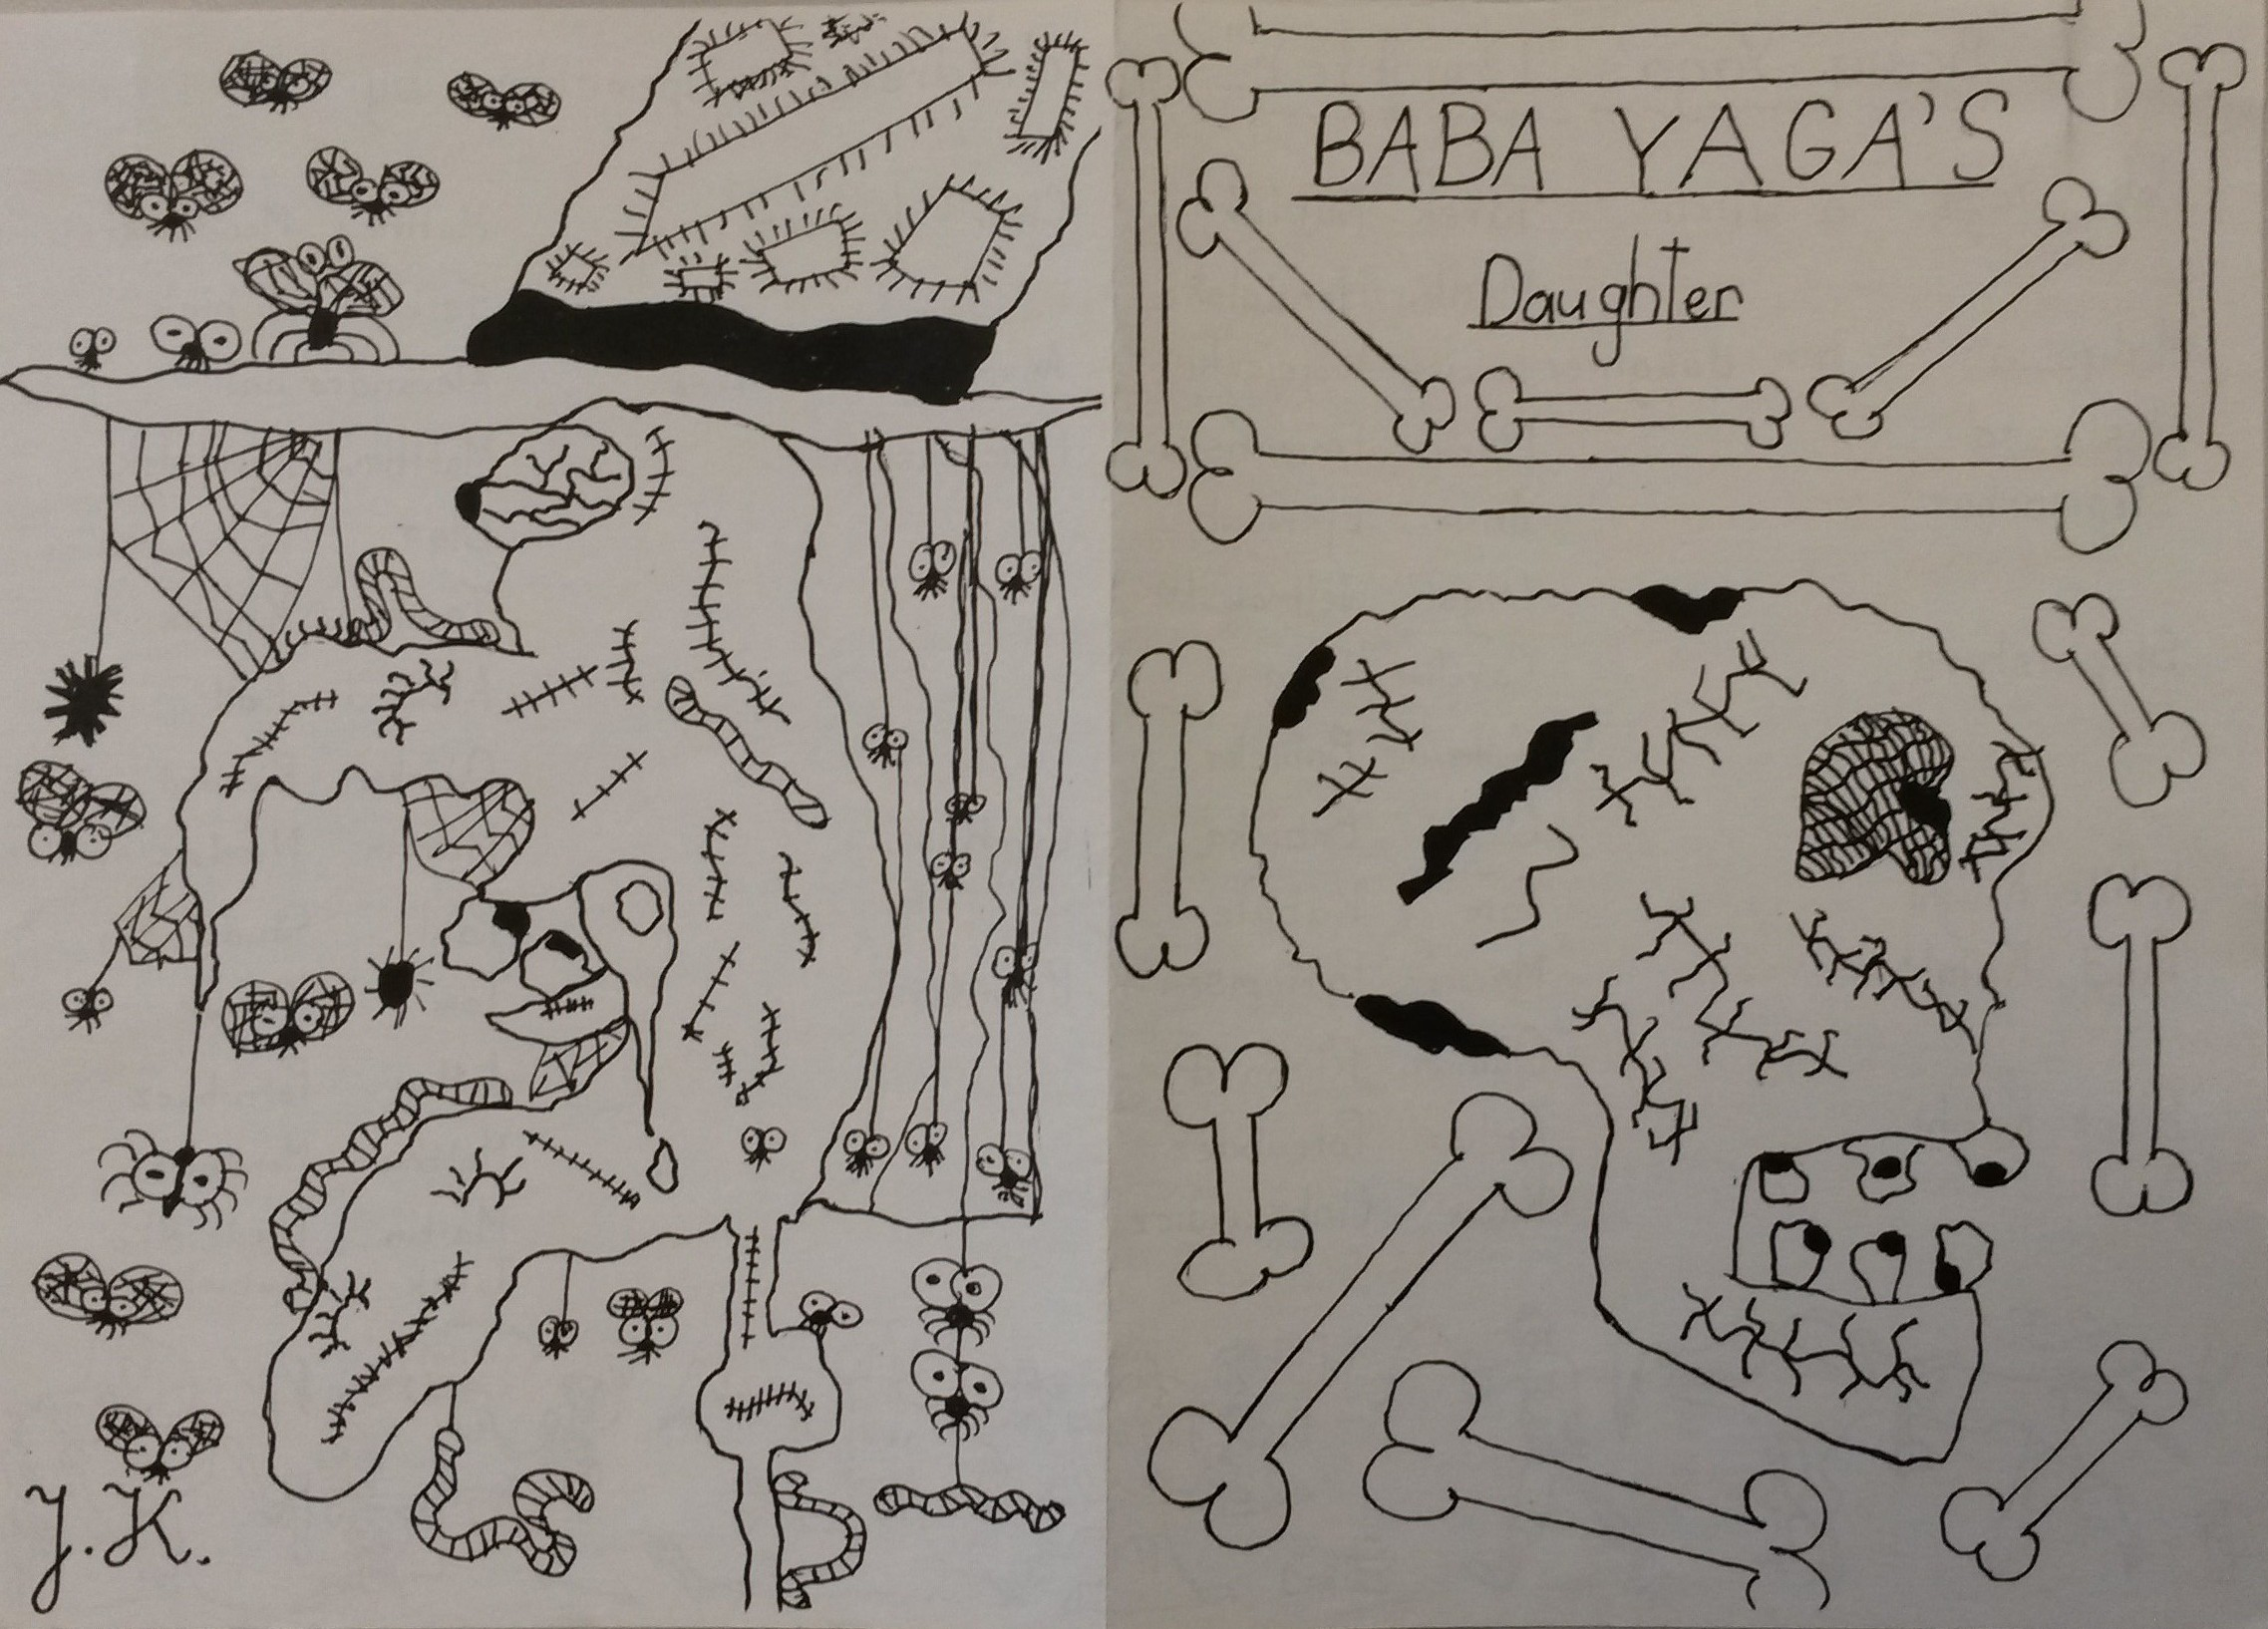 Baba Yaga's daughter by Lydia West